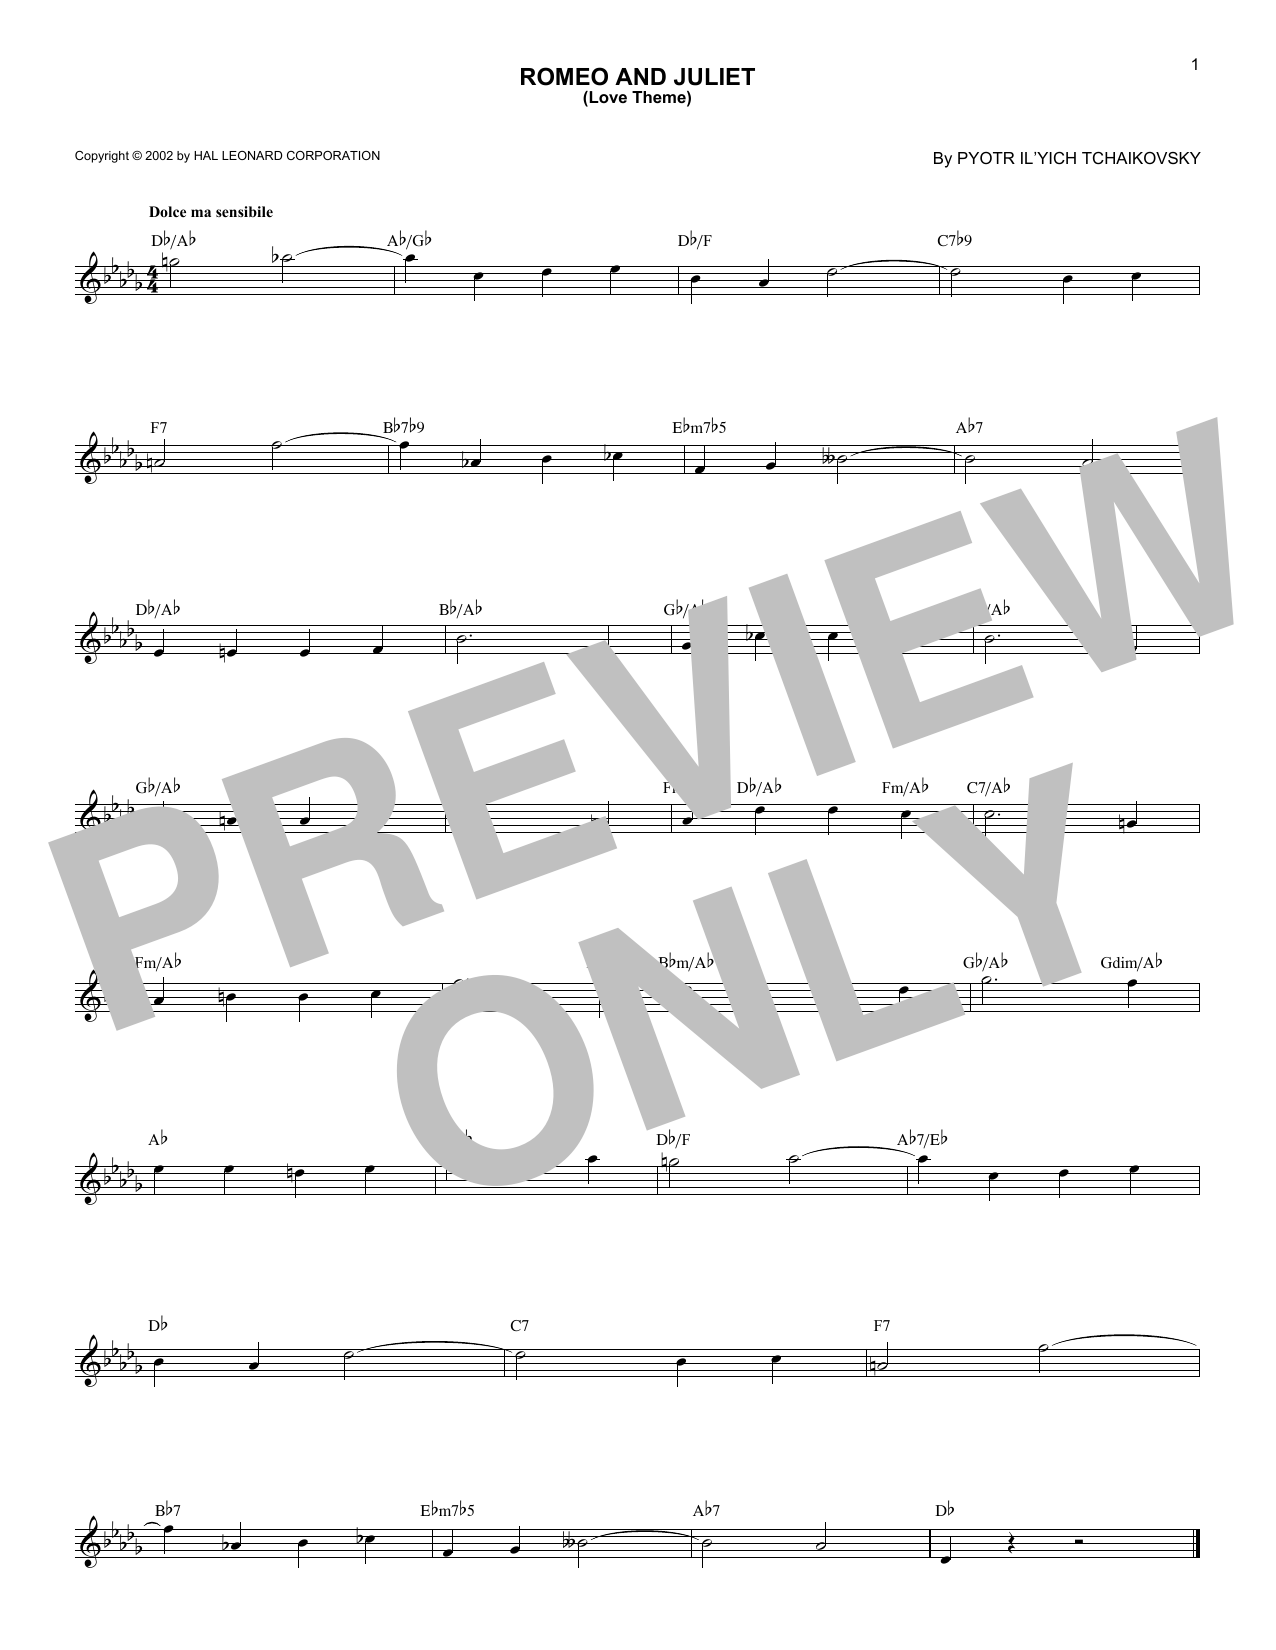 Romeo And Juliet (Love Theme) (Lead Sheet / Fake Book)